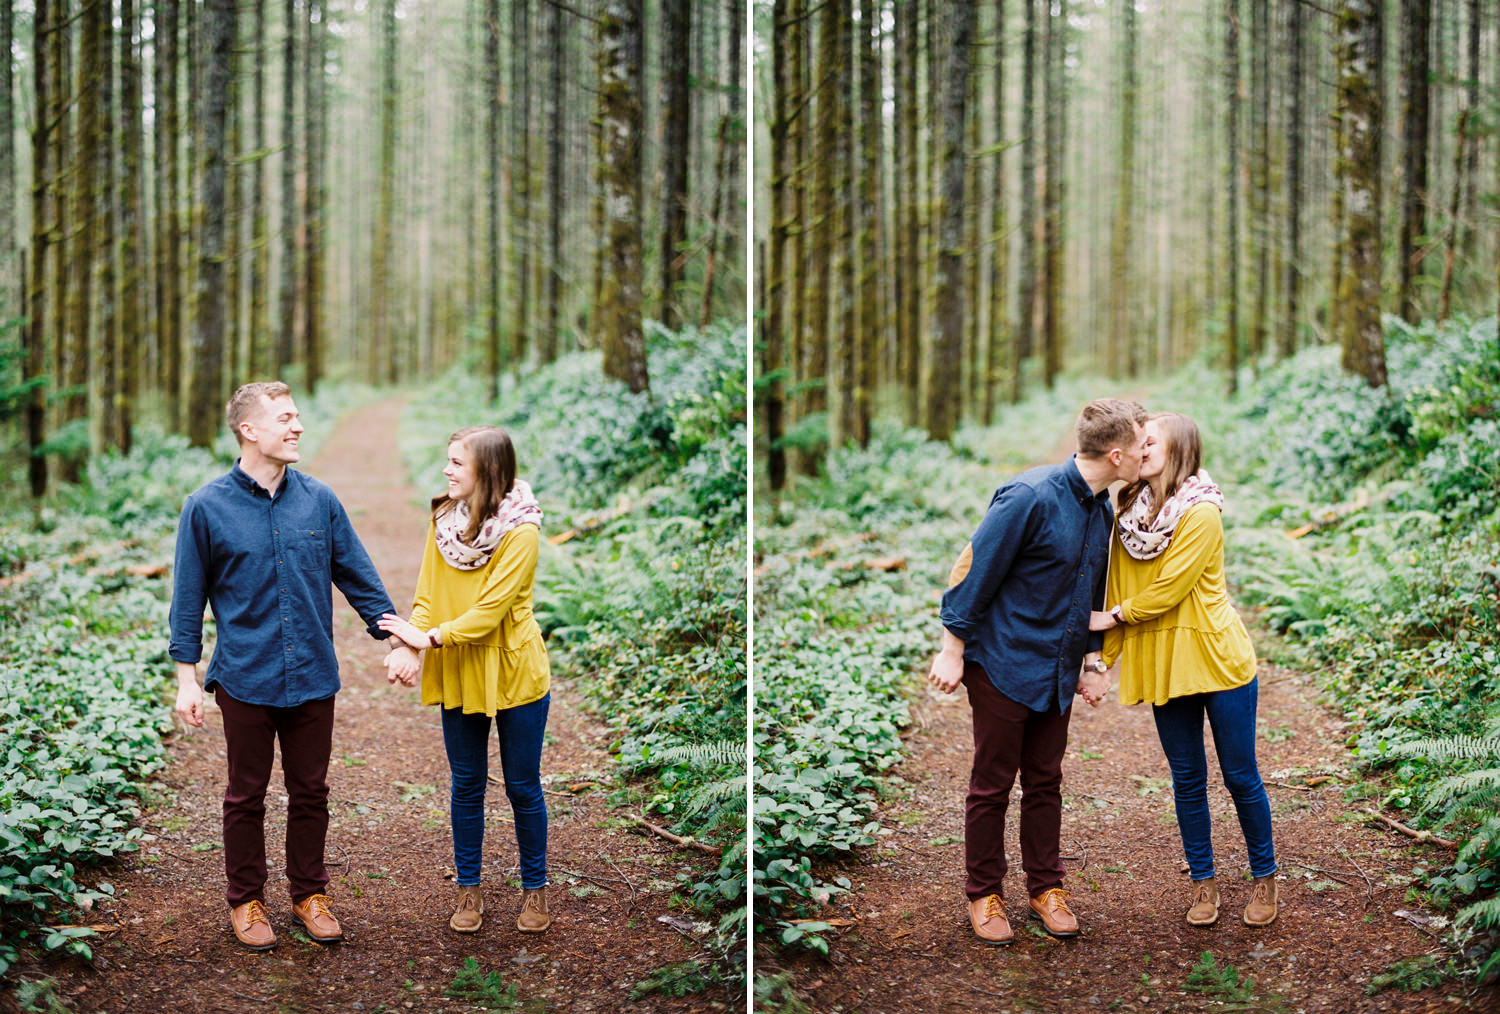 014-snoqualmie-mountain-engagement-session-seattle-film-wedding-photographer-ryan-flynn.jpg